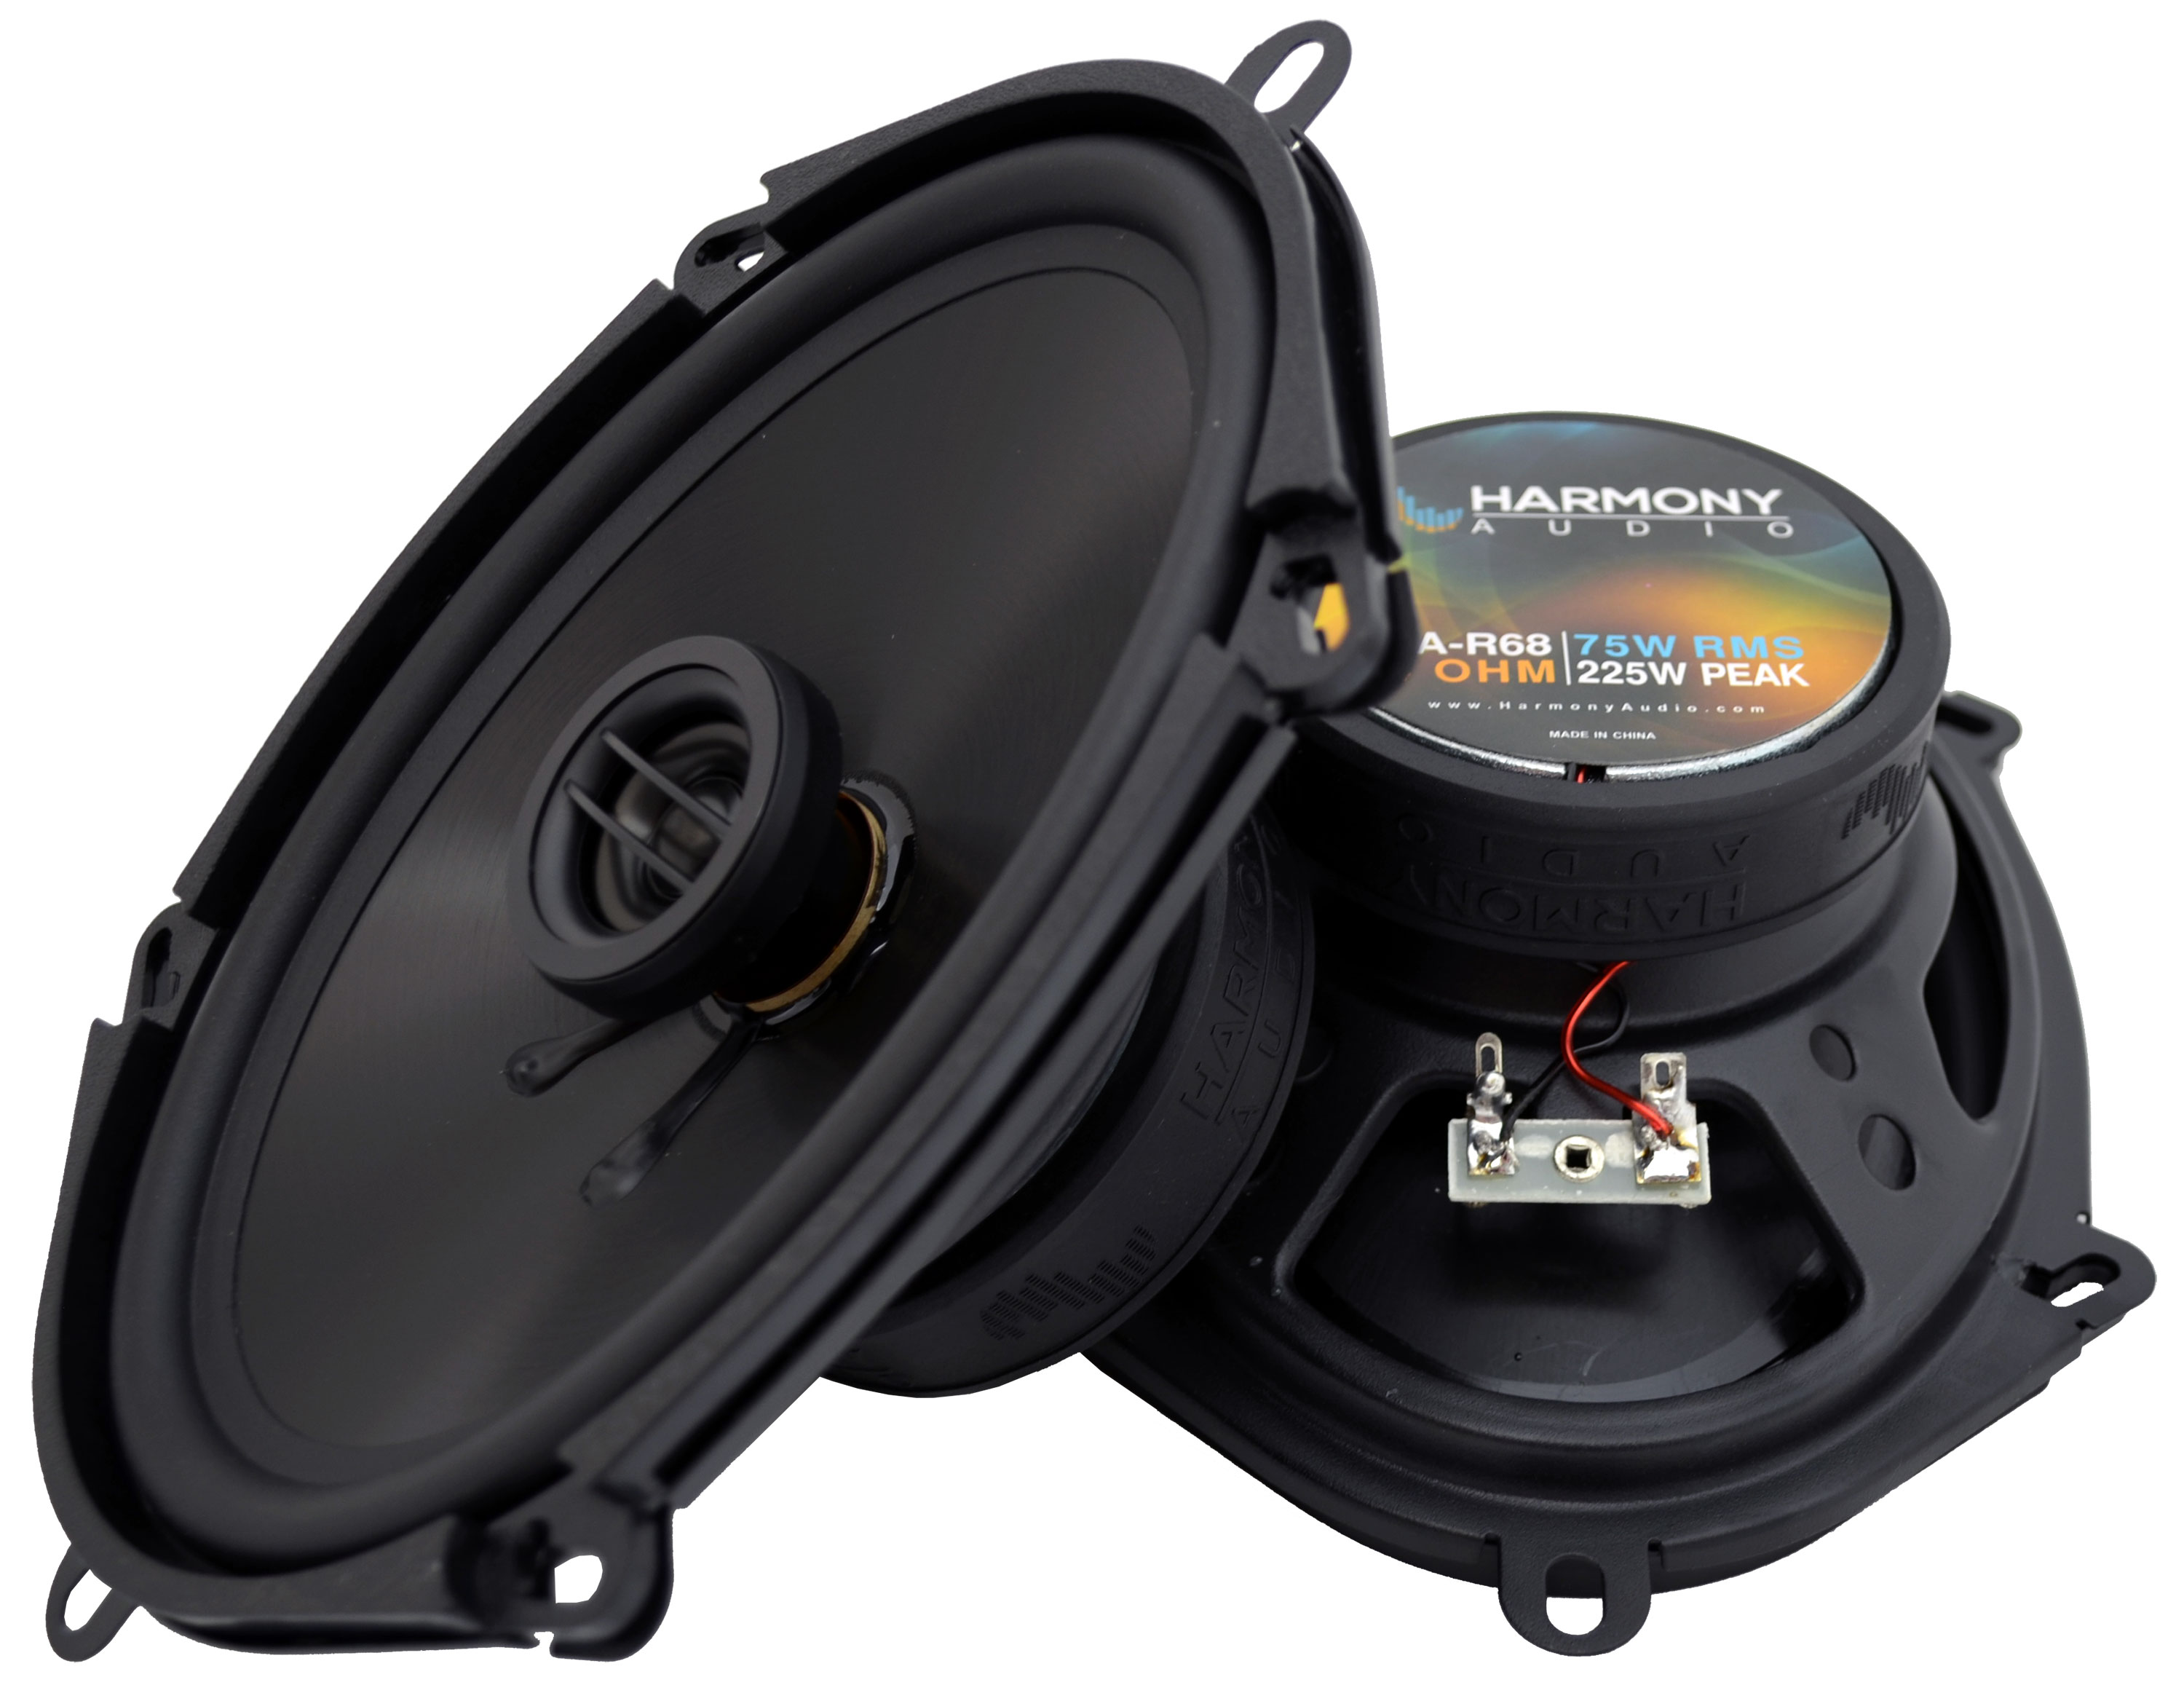 Fits Nissan Pathfinder 1994-1995 Rear Overhead Replacement HA-R68 Speakers New